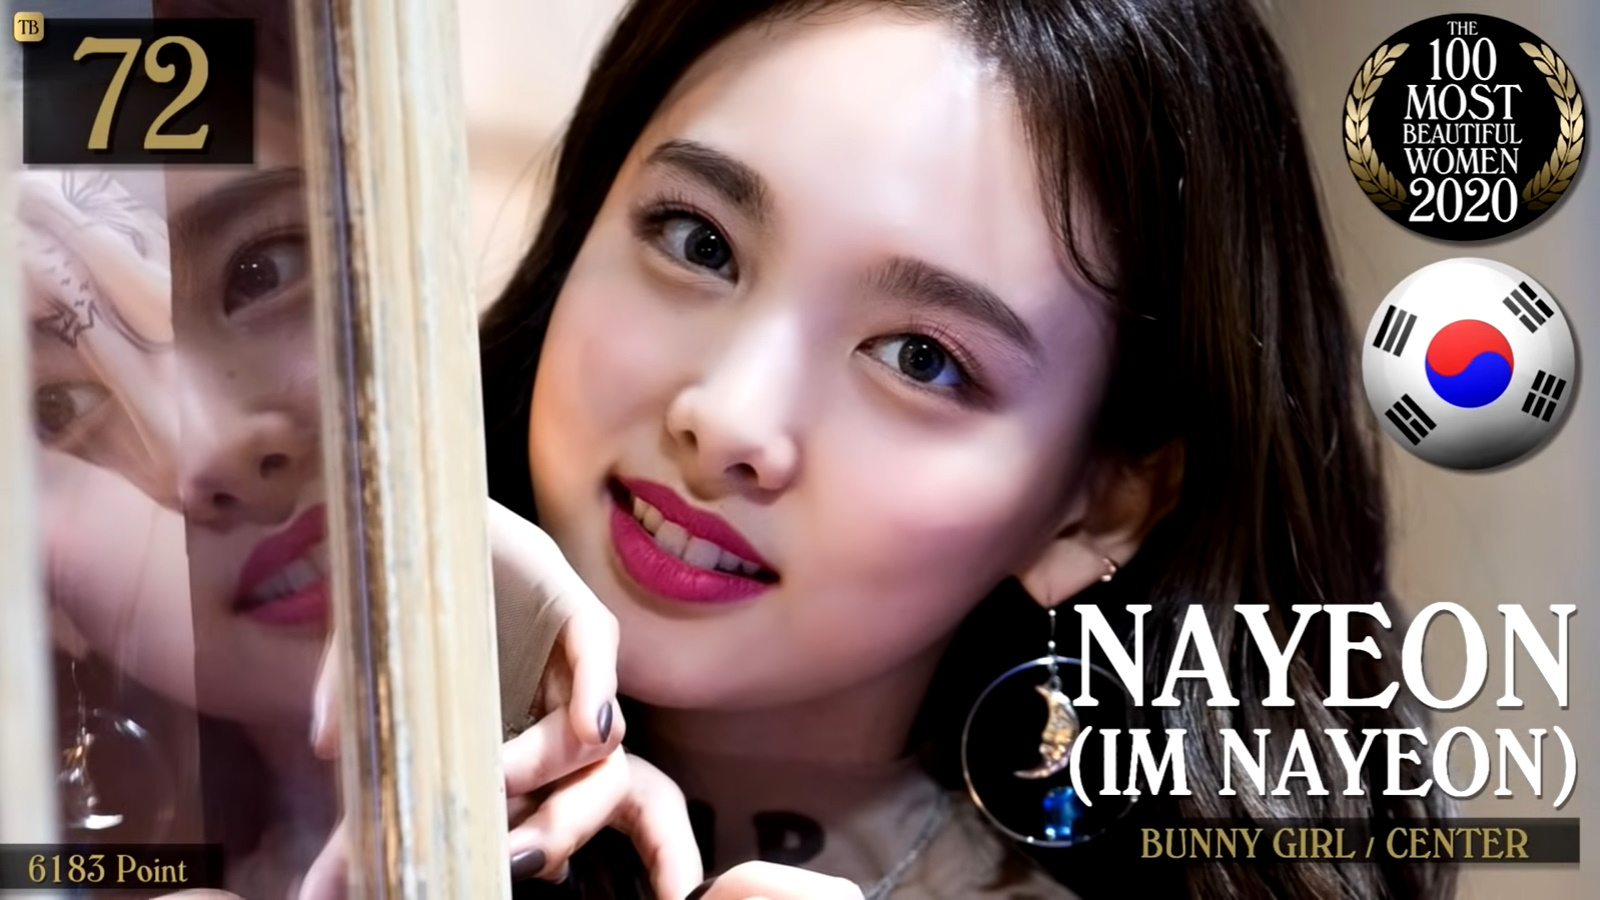 NAYEON - The 100 Most Beautiful Women Of 2020